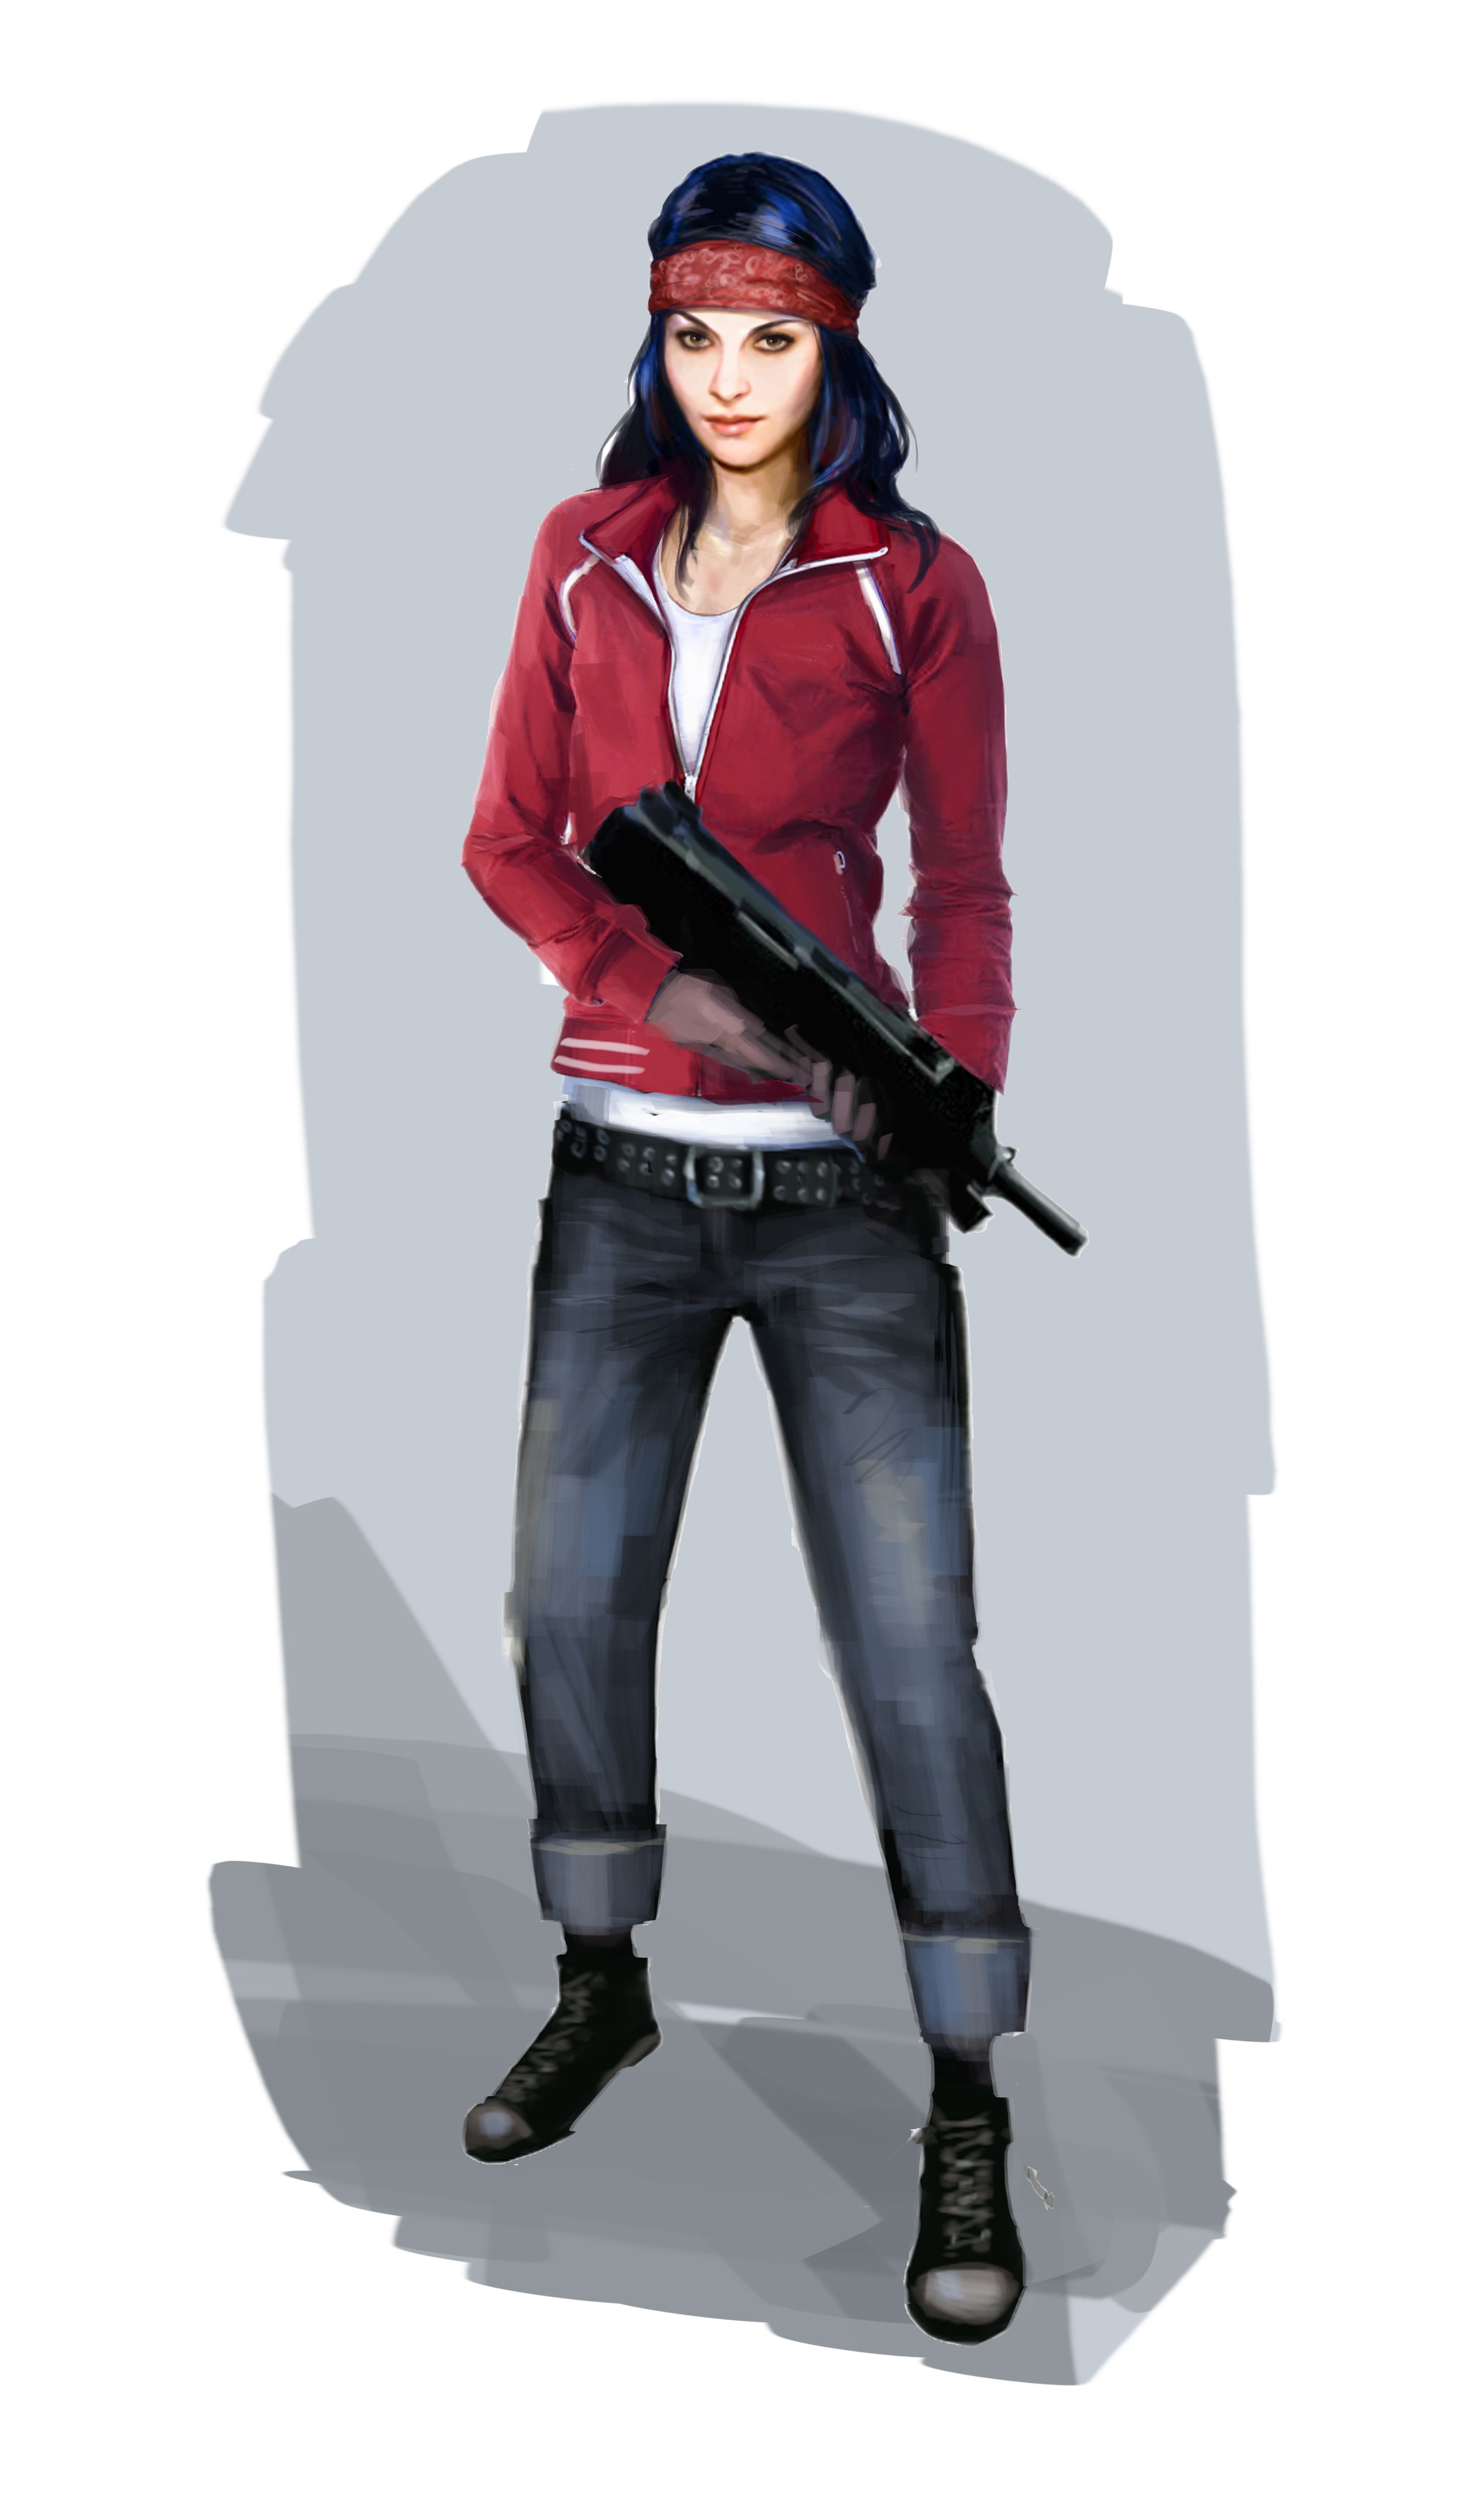 This is the zoey character from l4d who is probably a little